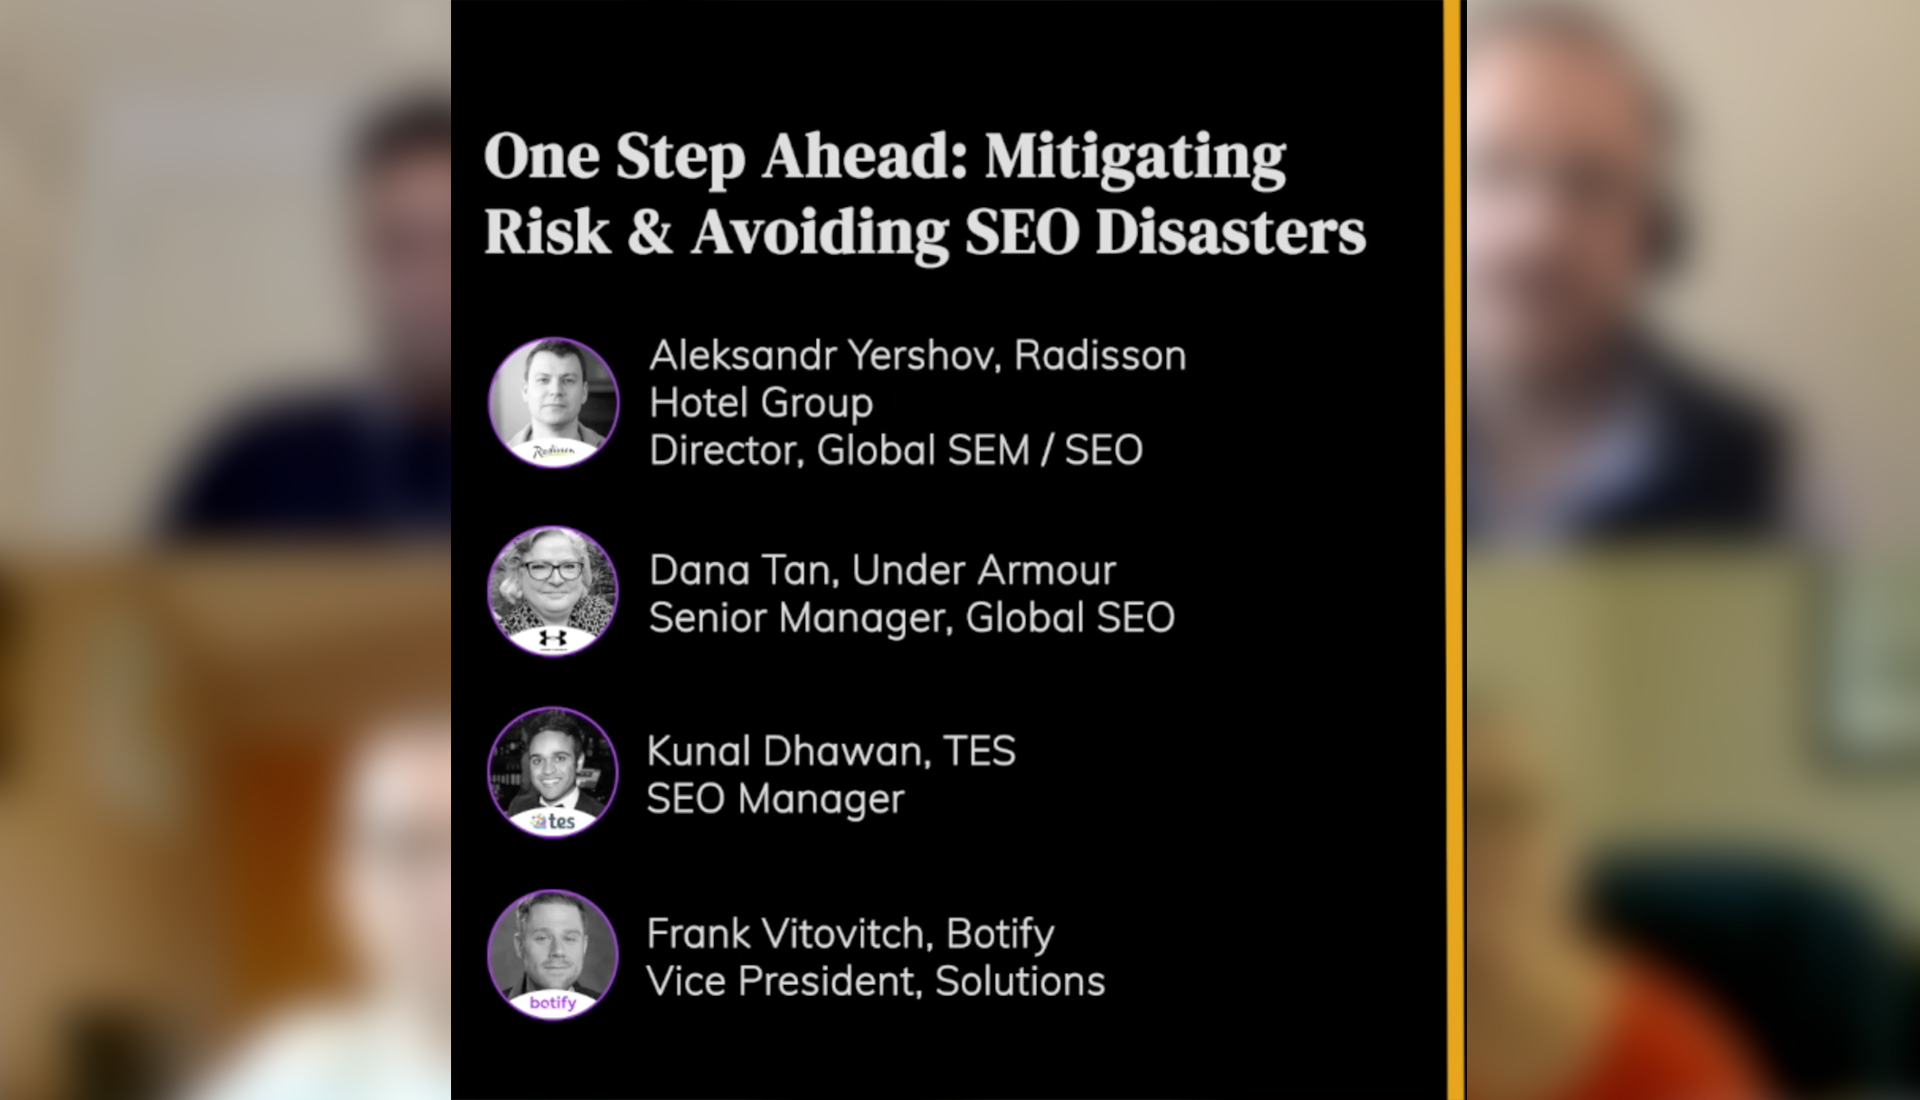 One Step Ahead: Mitigating Risk & Avoiding SEO Disasters